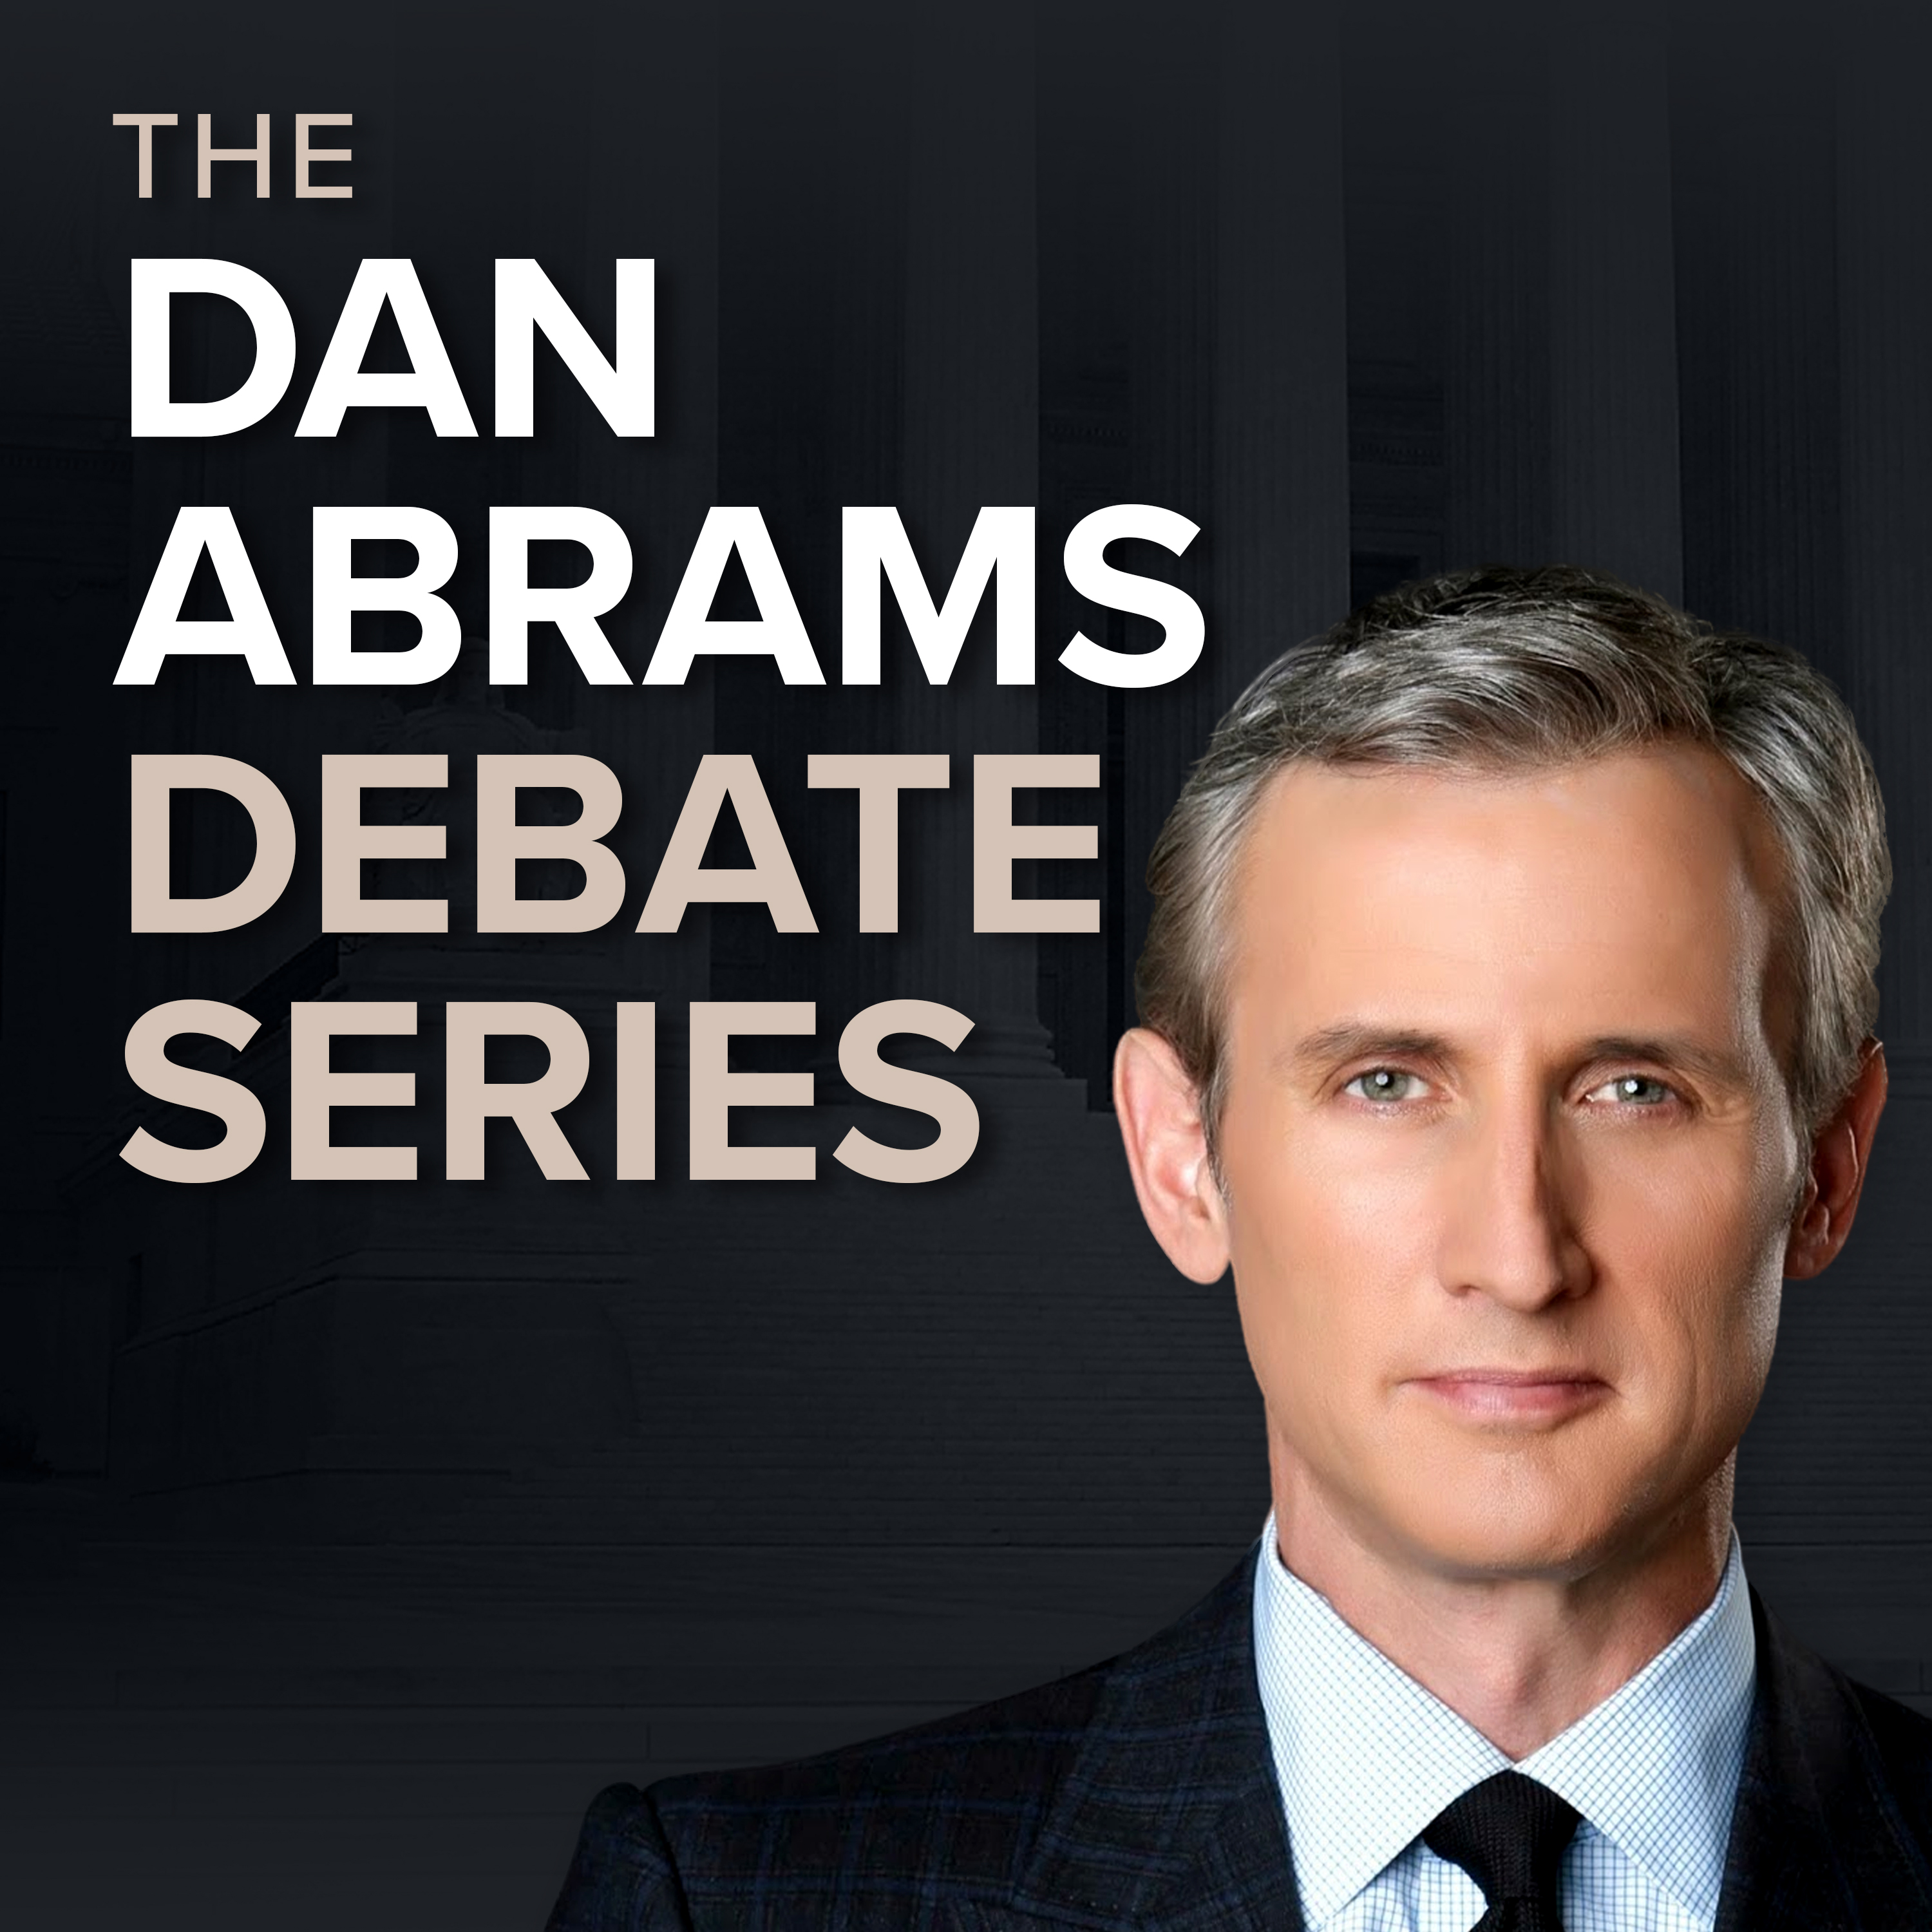 The Dan Abrams Debate Series